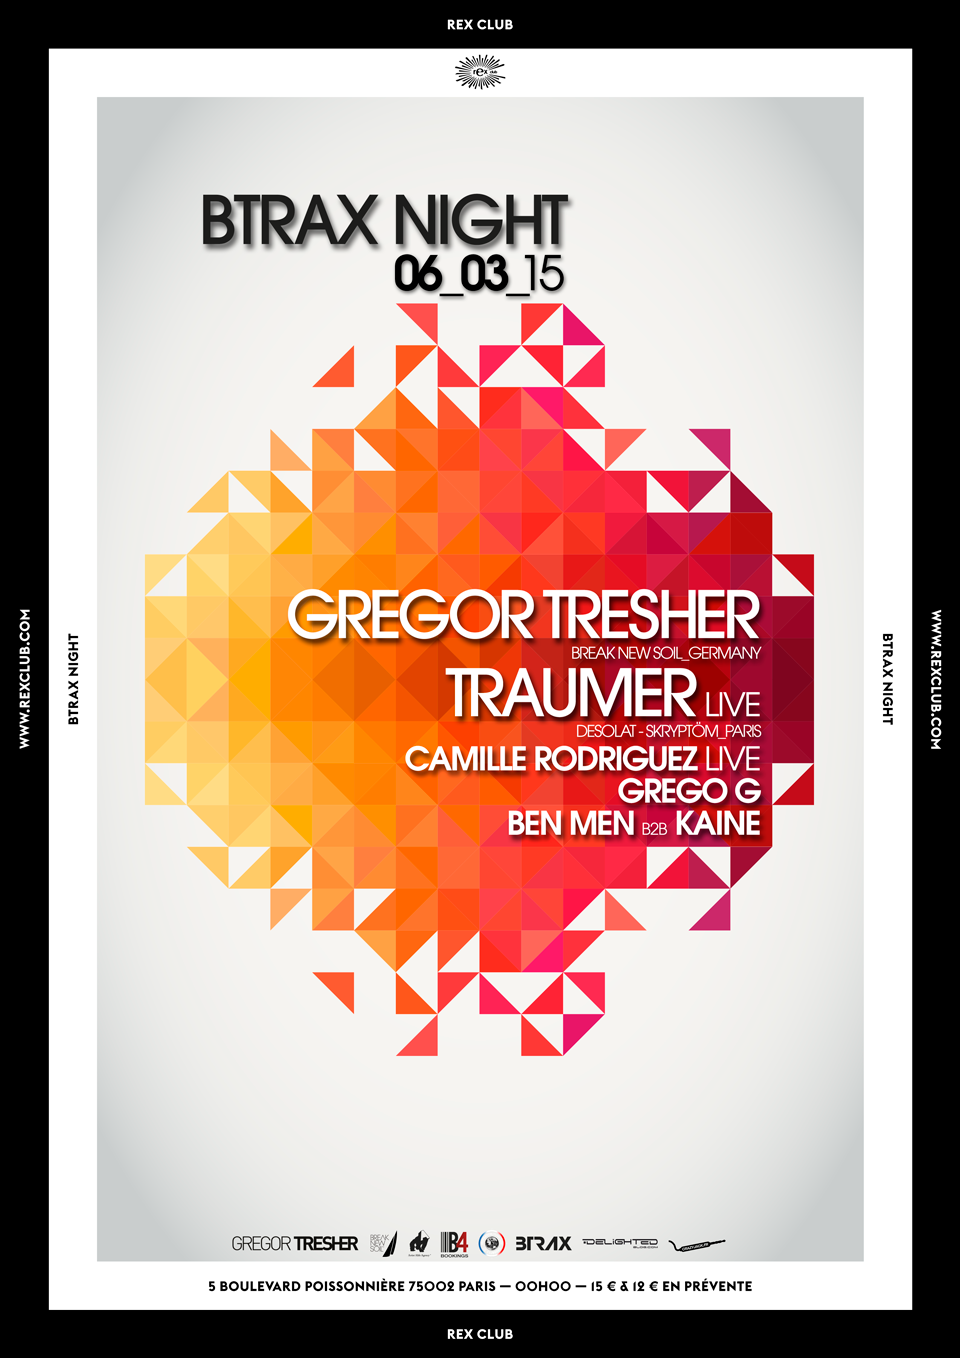 Btrax_night_20150306